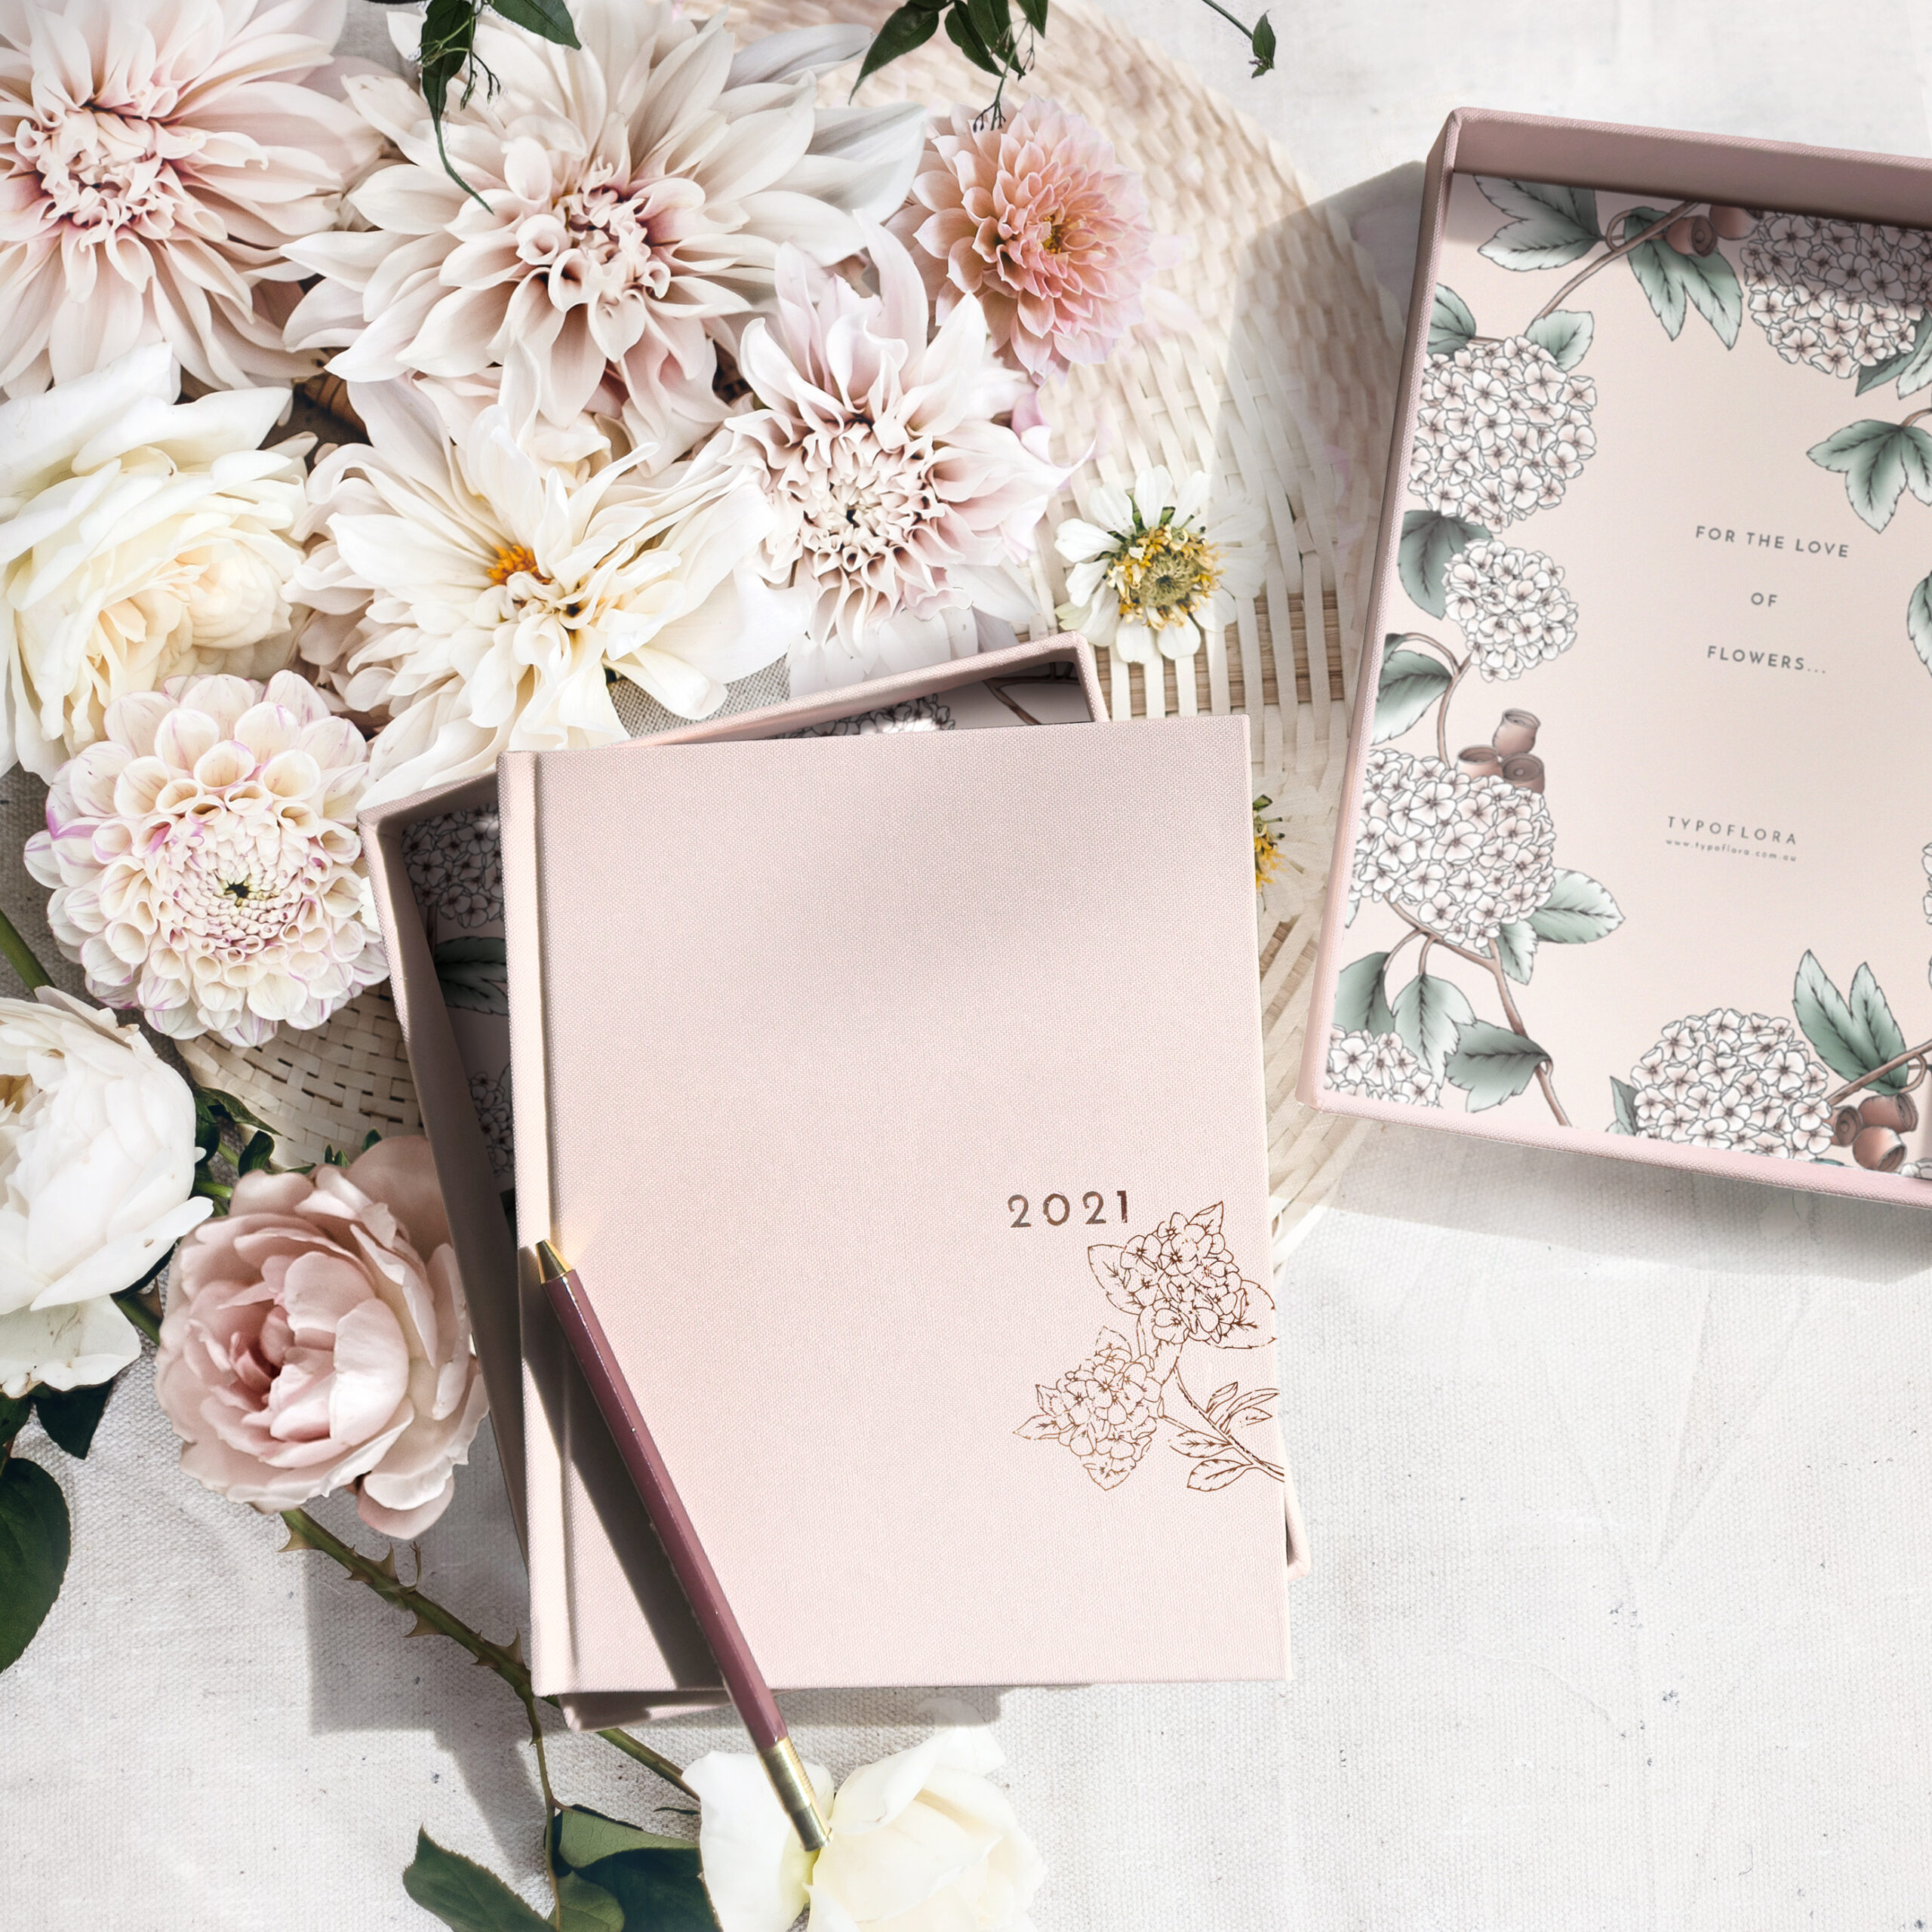 2021 PLANNERS - BLUSH ALWAYS FLOWERS